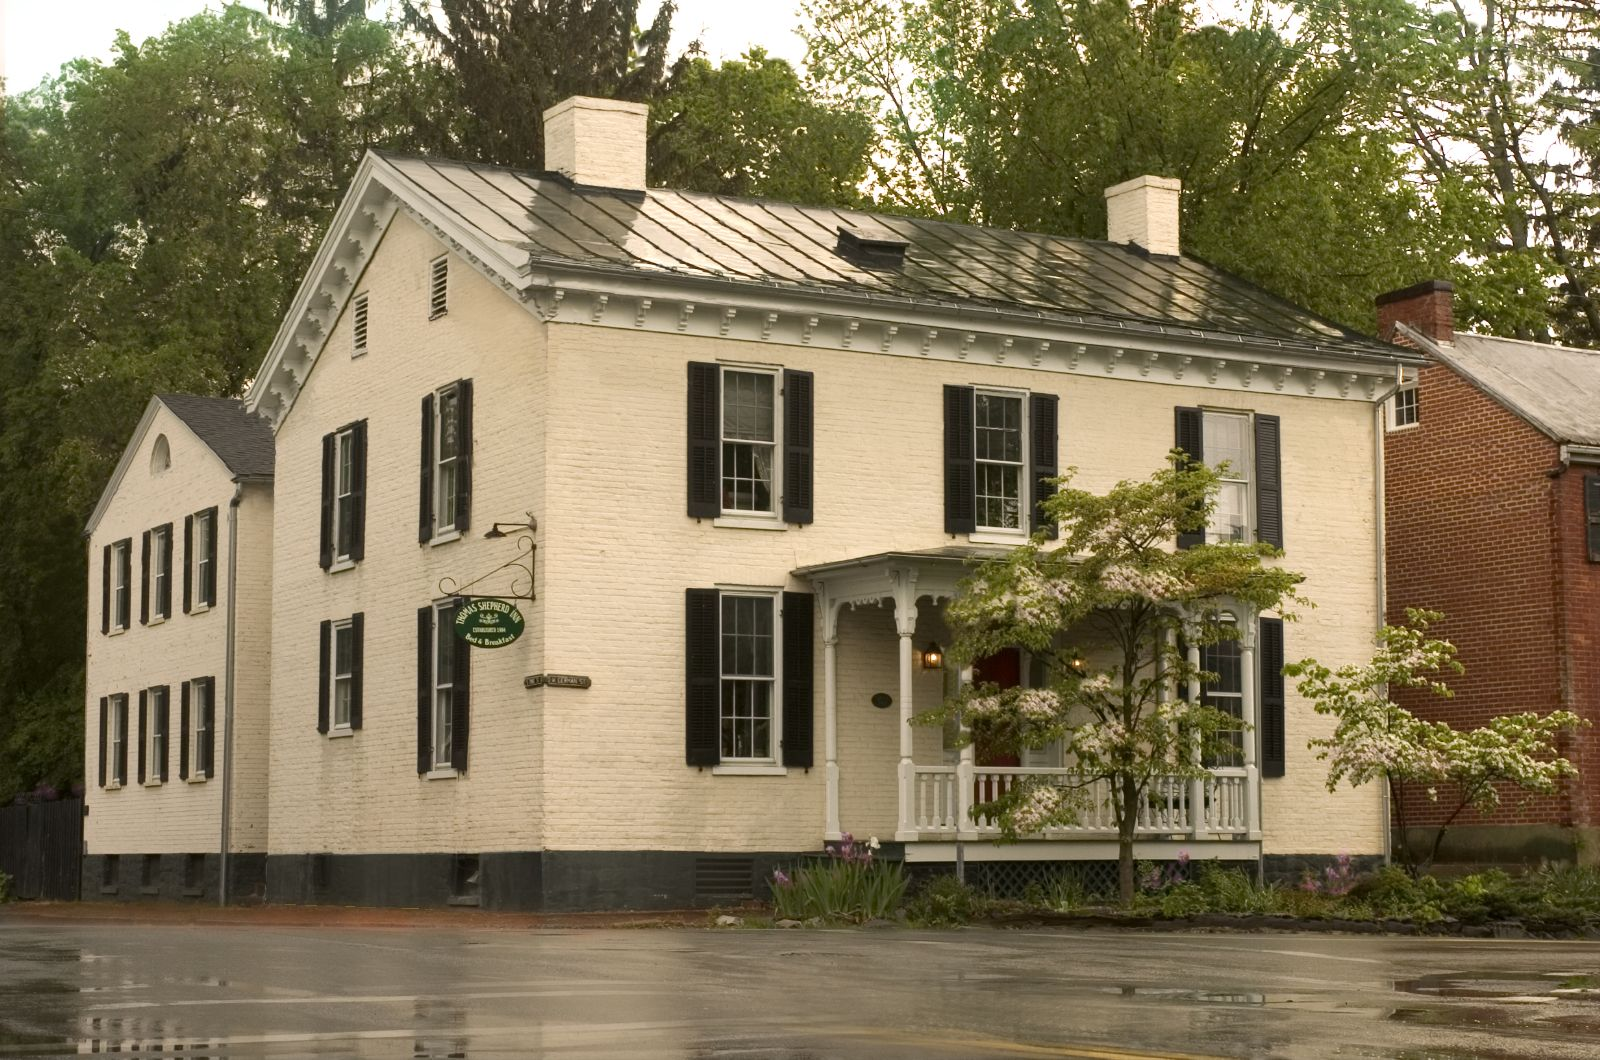 This historic home was converted to a bed and breakfast in the 1980s and was purchased by Lauren and David Duh in 1984.